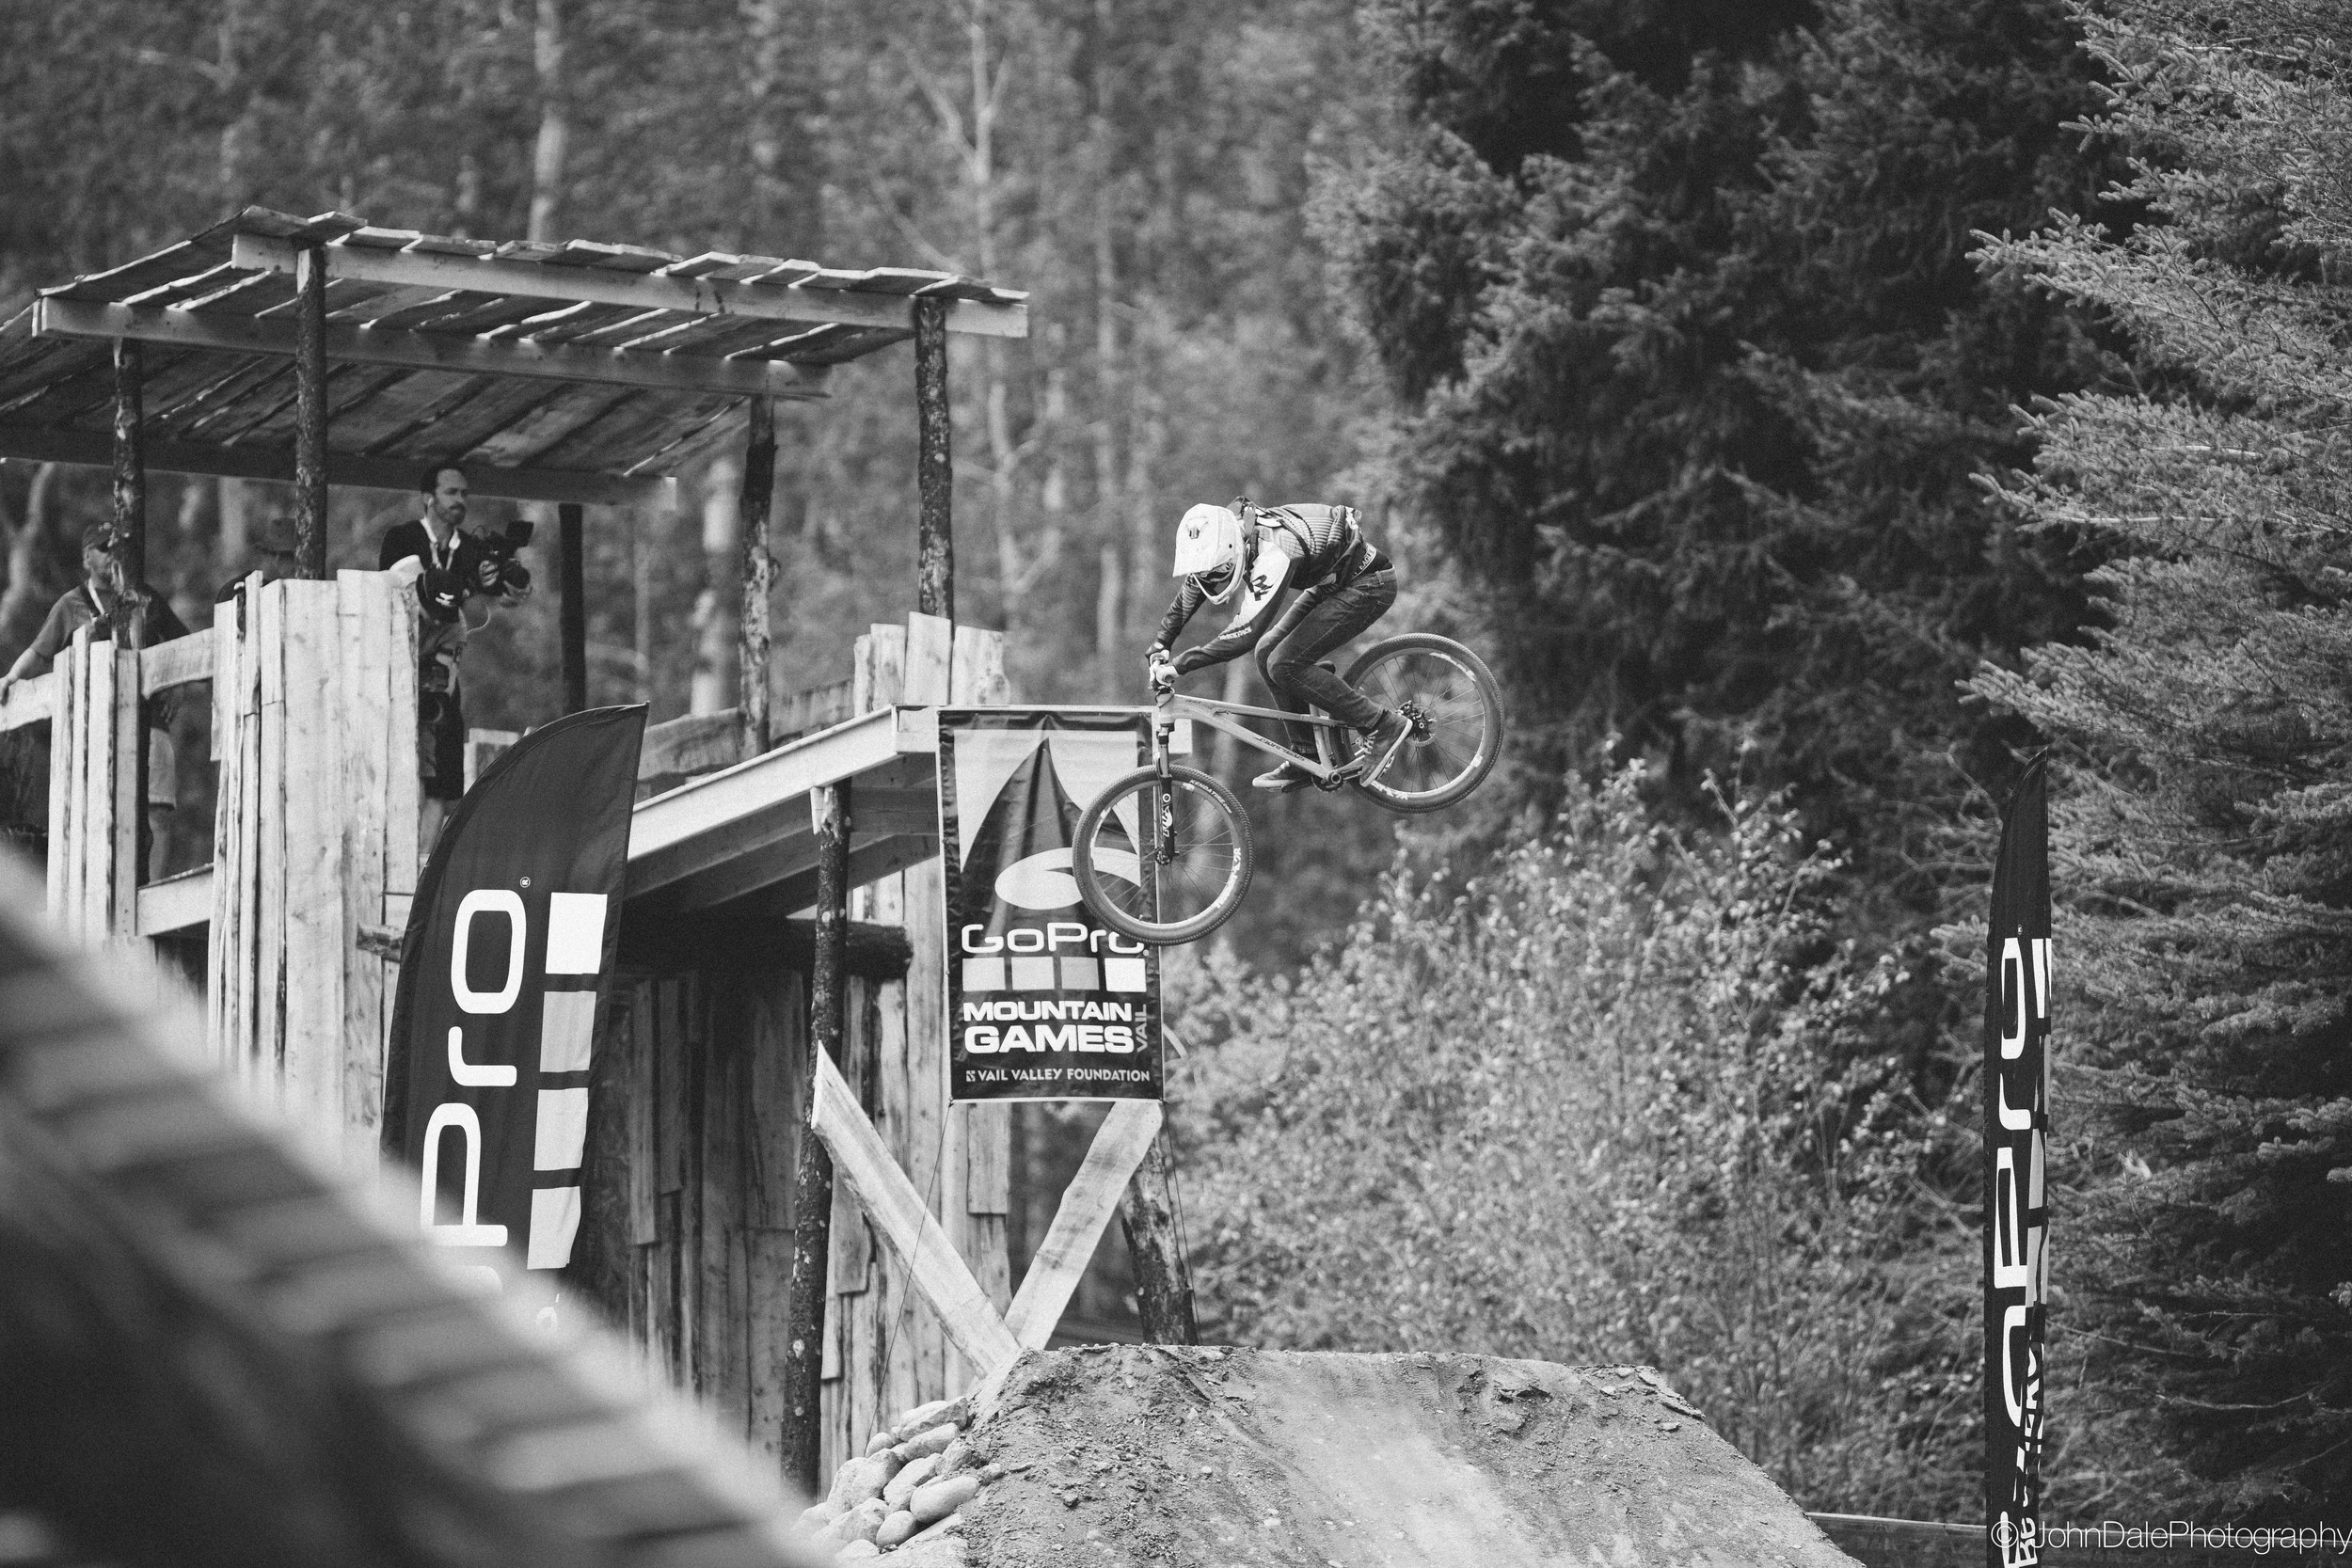 GoPro Mountain Games-Slopestyle and XC-3.jpg